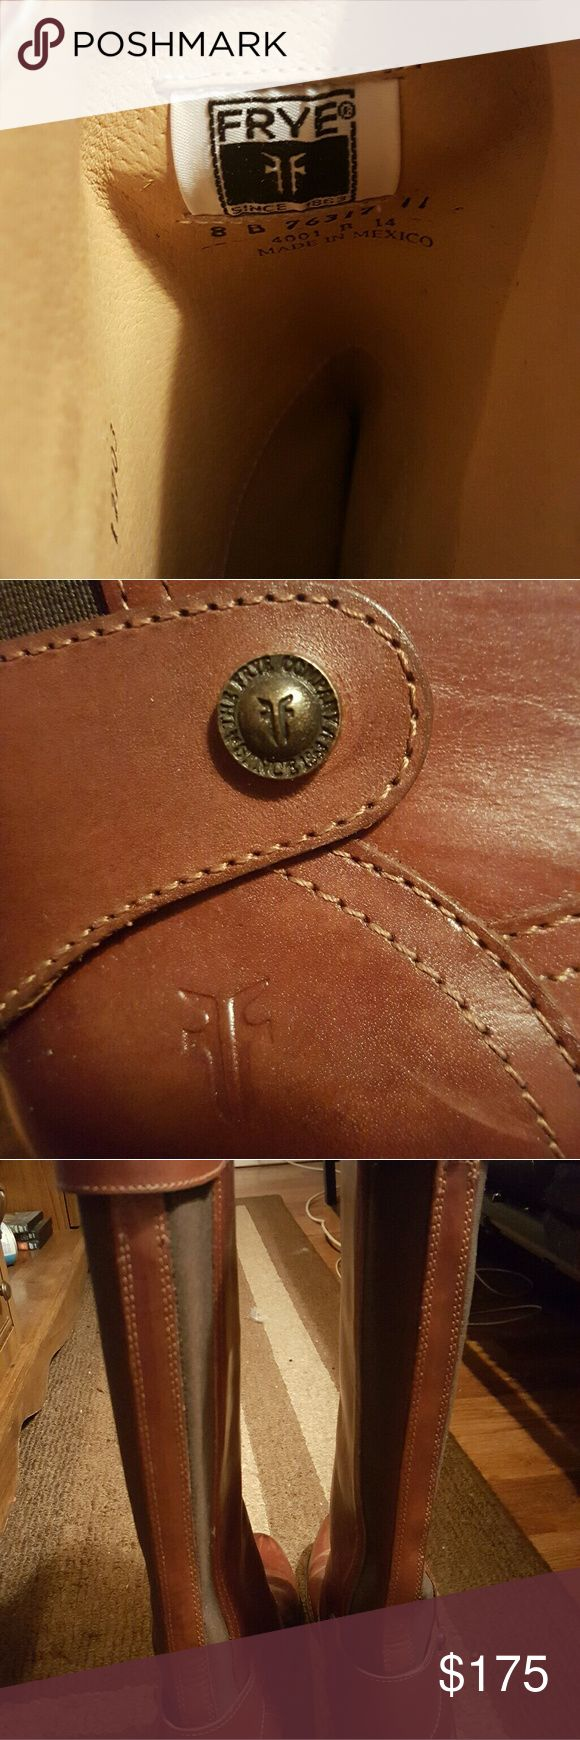 Frye Riding boots size 8 These boots are beautiful. If they fit, I wouldn't sell them. My sister got them for me and they didn't fit and have been collecting dust, breaks my heart. Wore them one time to see if I could get over the 1/2 but I couldn't. Frye Shoes Heeled Boots